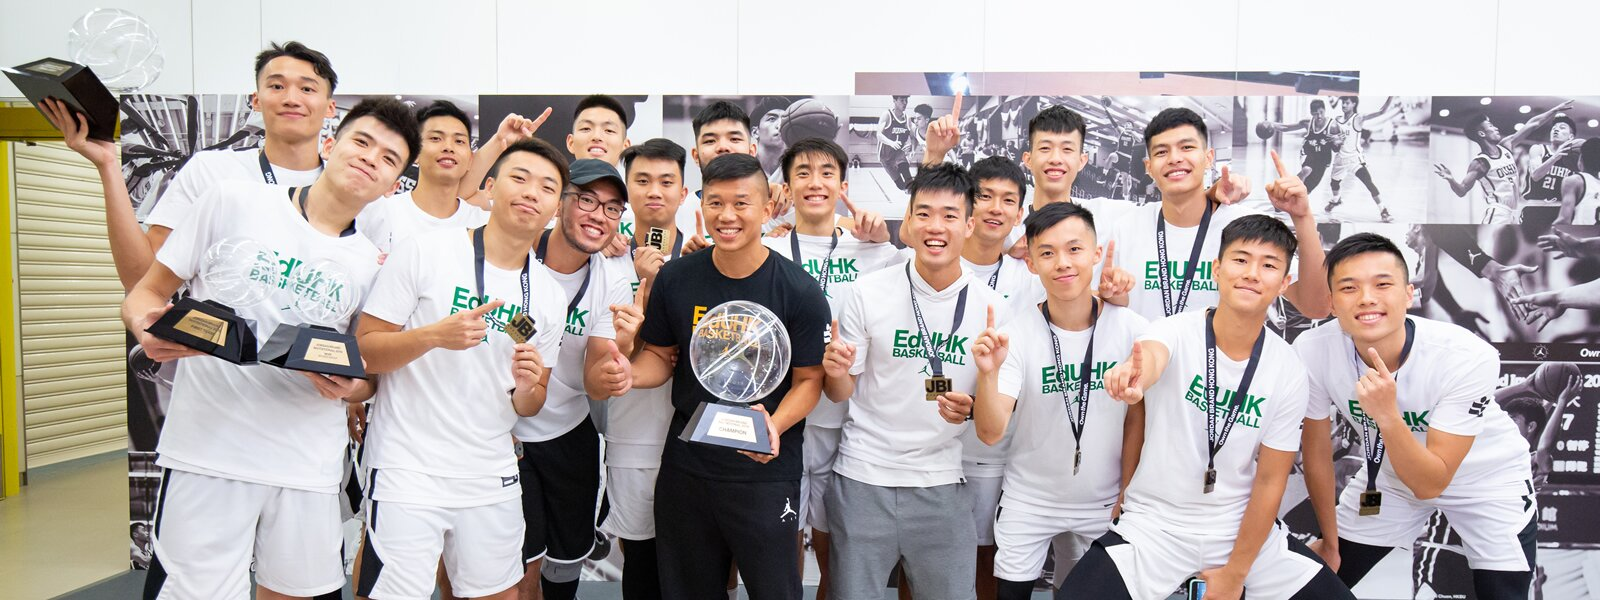 EdUHK Men's Team Takes the Championship in Inter-university Basketball Tournament